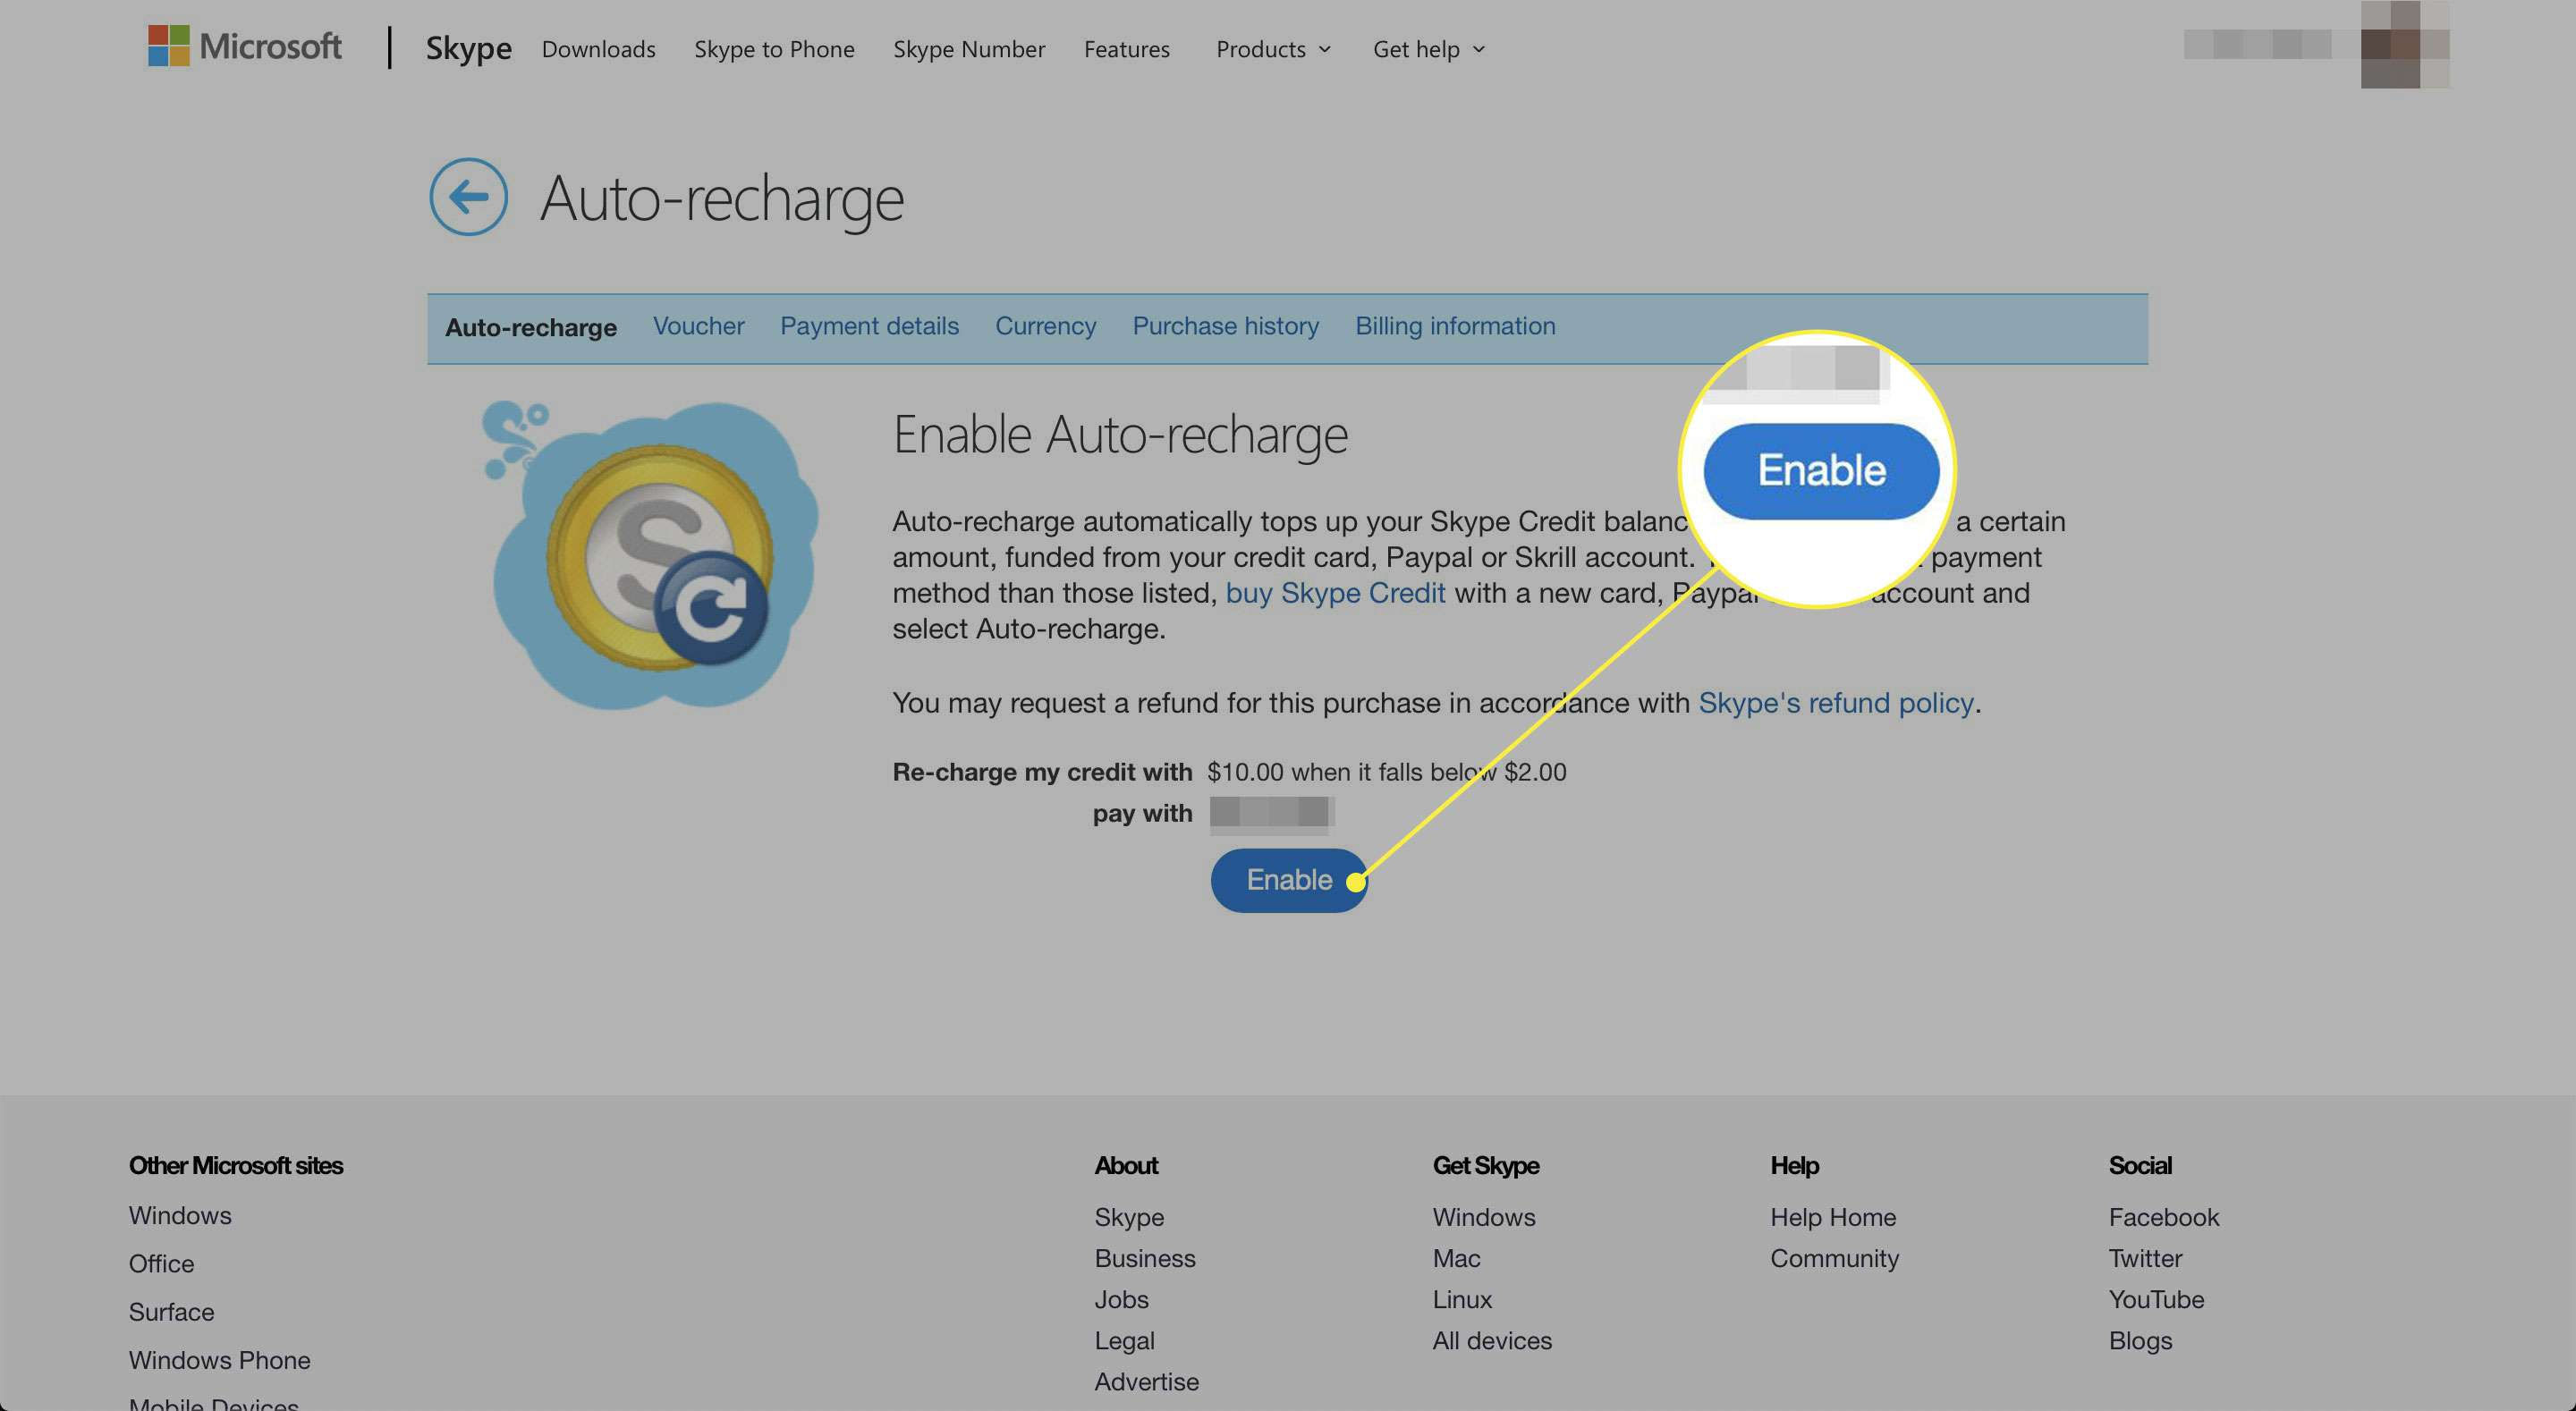 A screenshot of Skype's Auto-recharge page with the Enable/Disable button highlighted